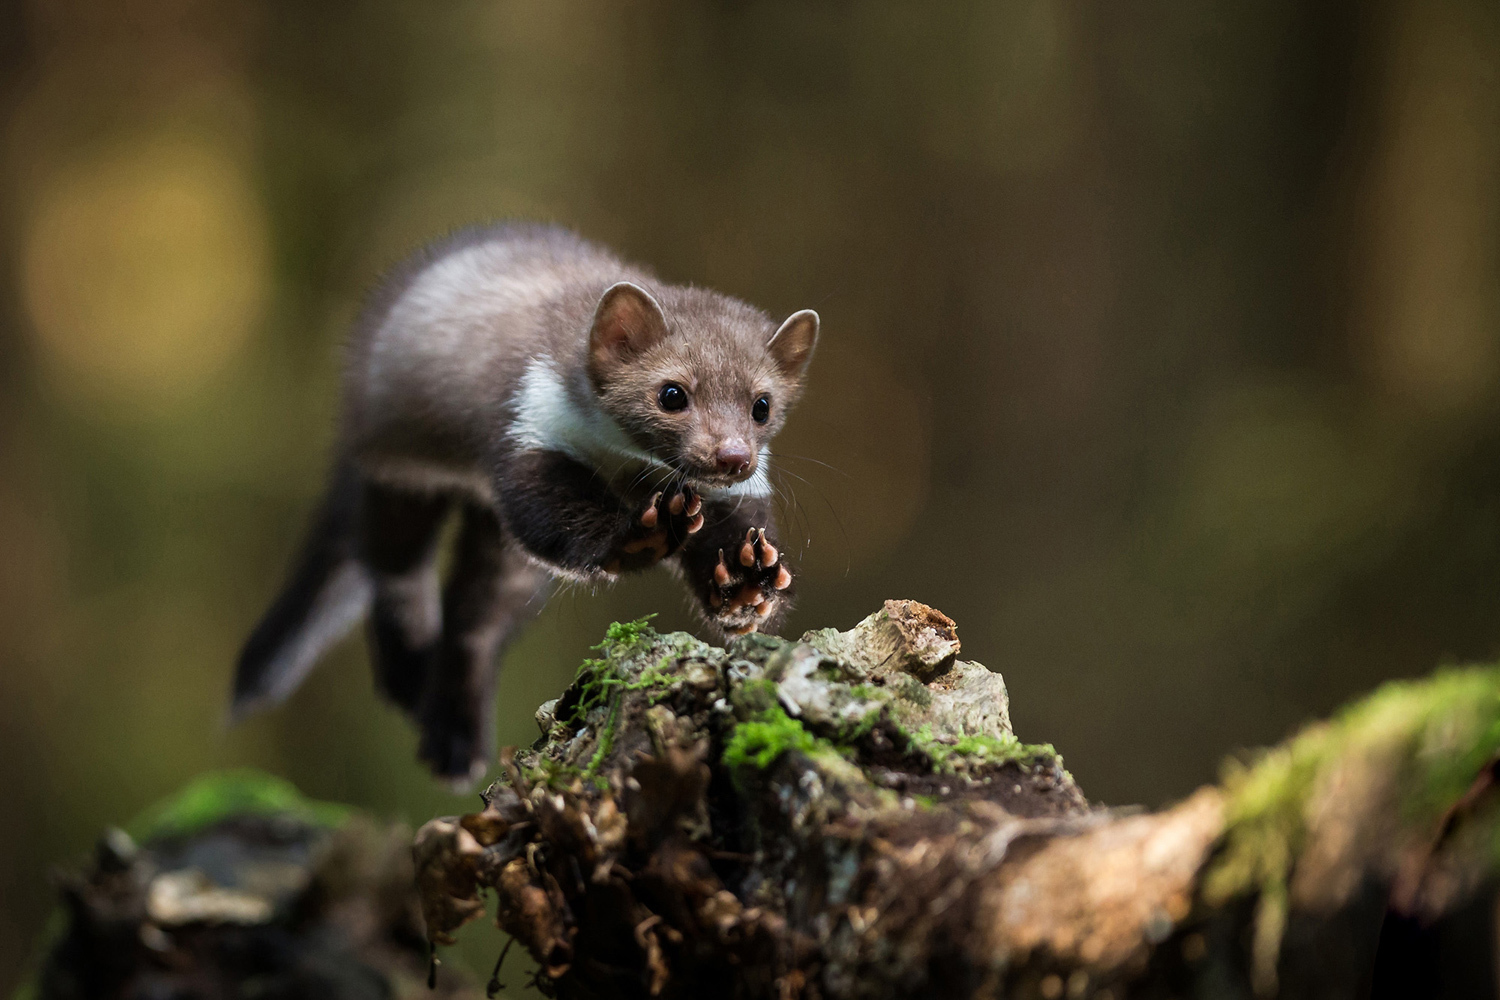 sony-world-photography-08-white-breasted-marten